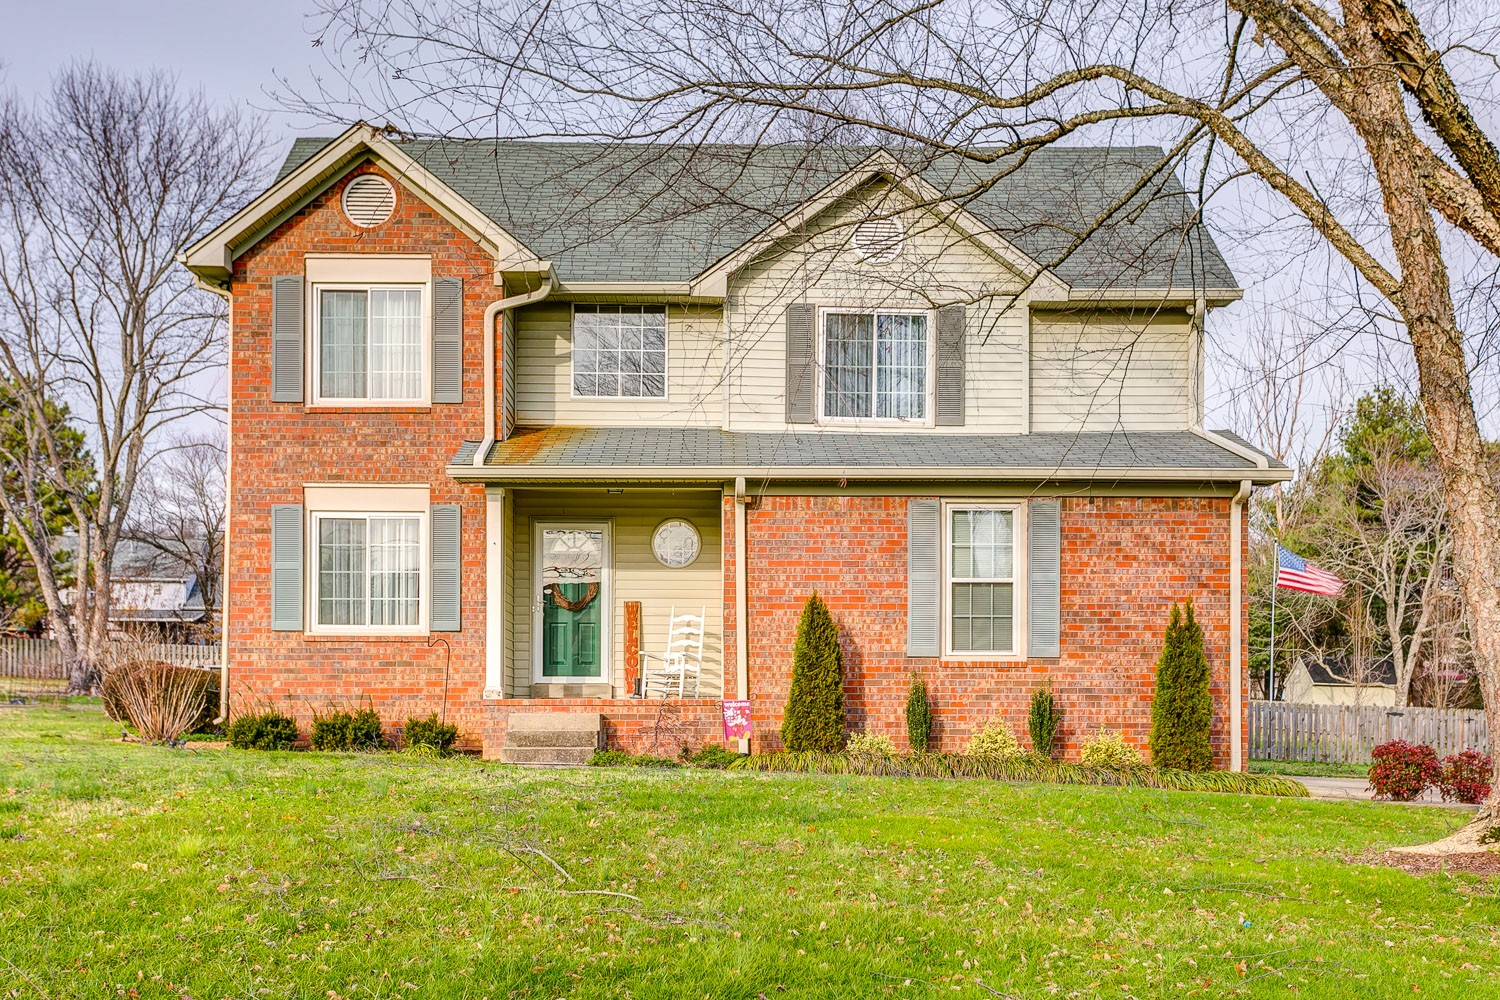 1708 Whitt Dr, Spring Hill in Williamson County, T County, TN 37174 Home for Sale